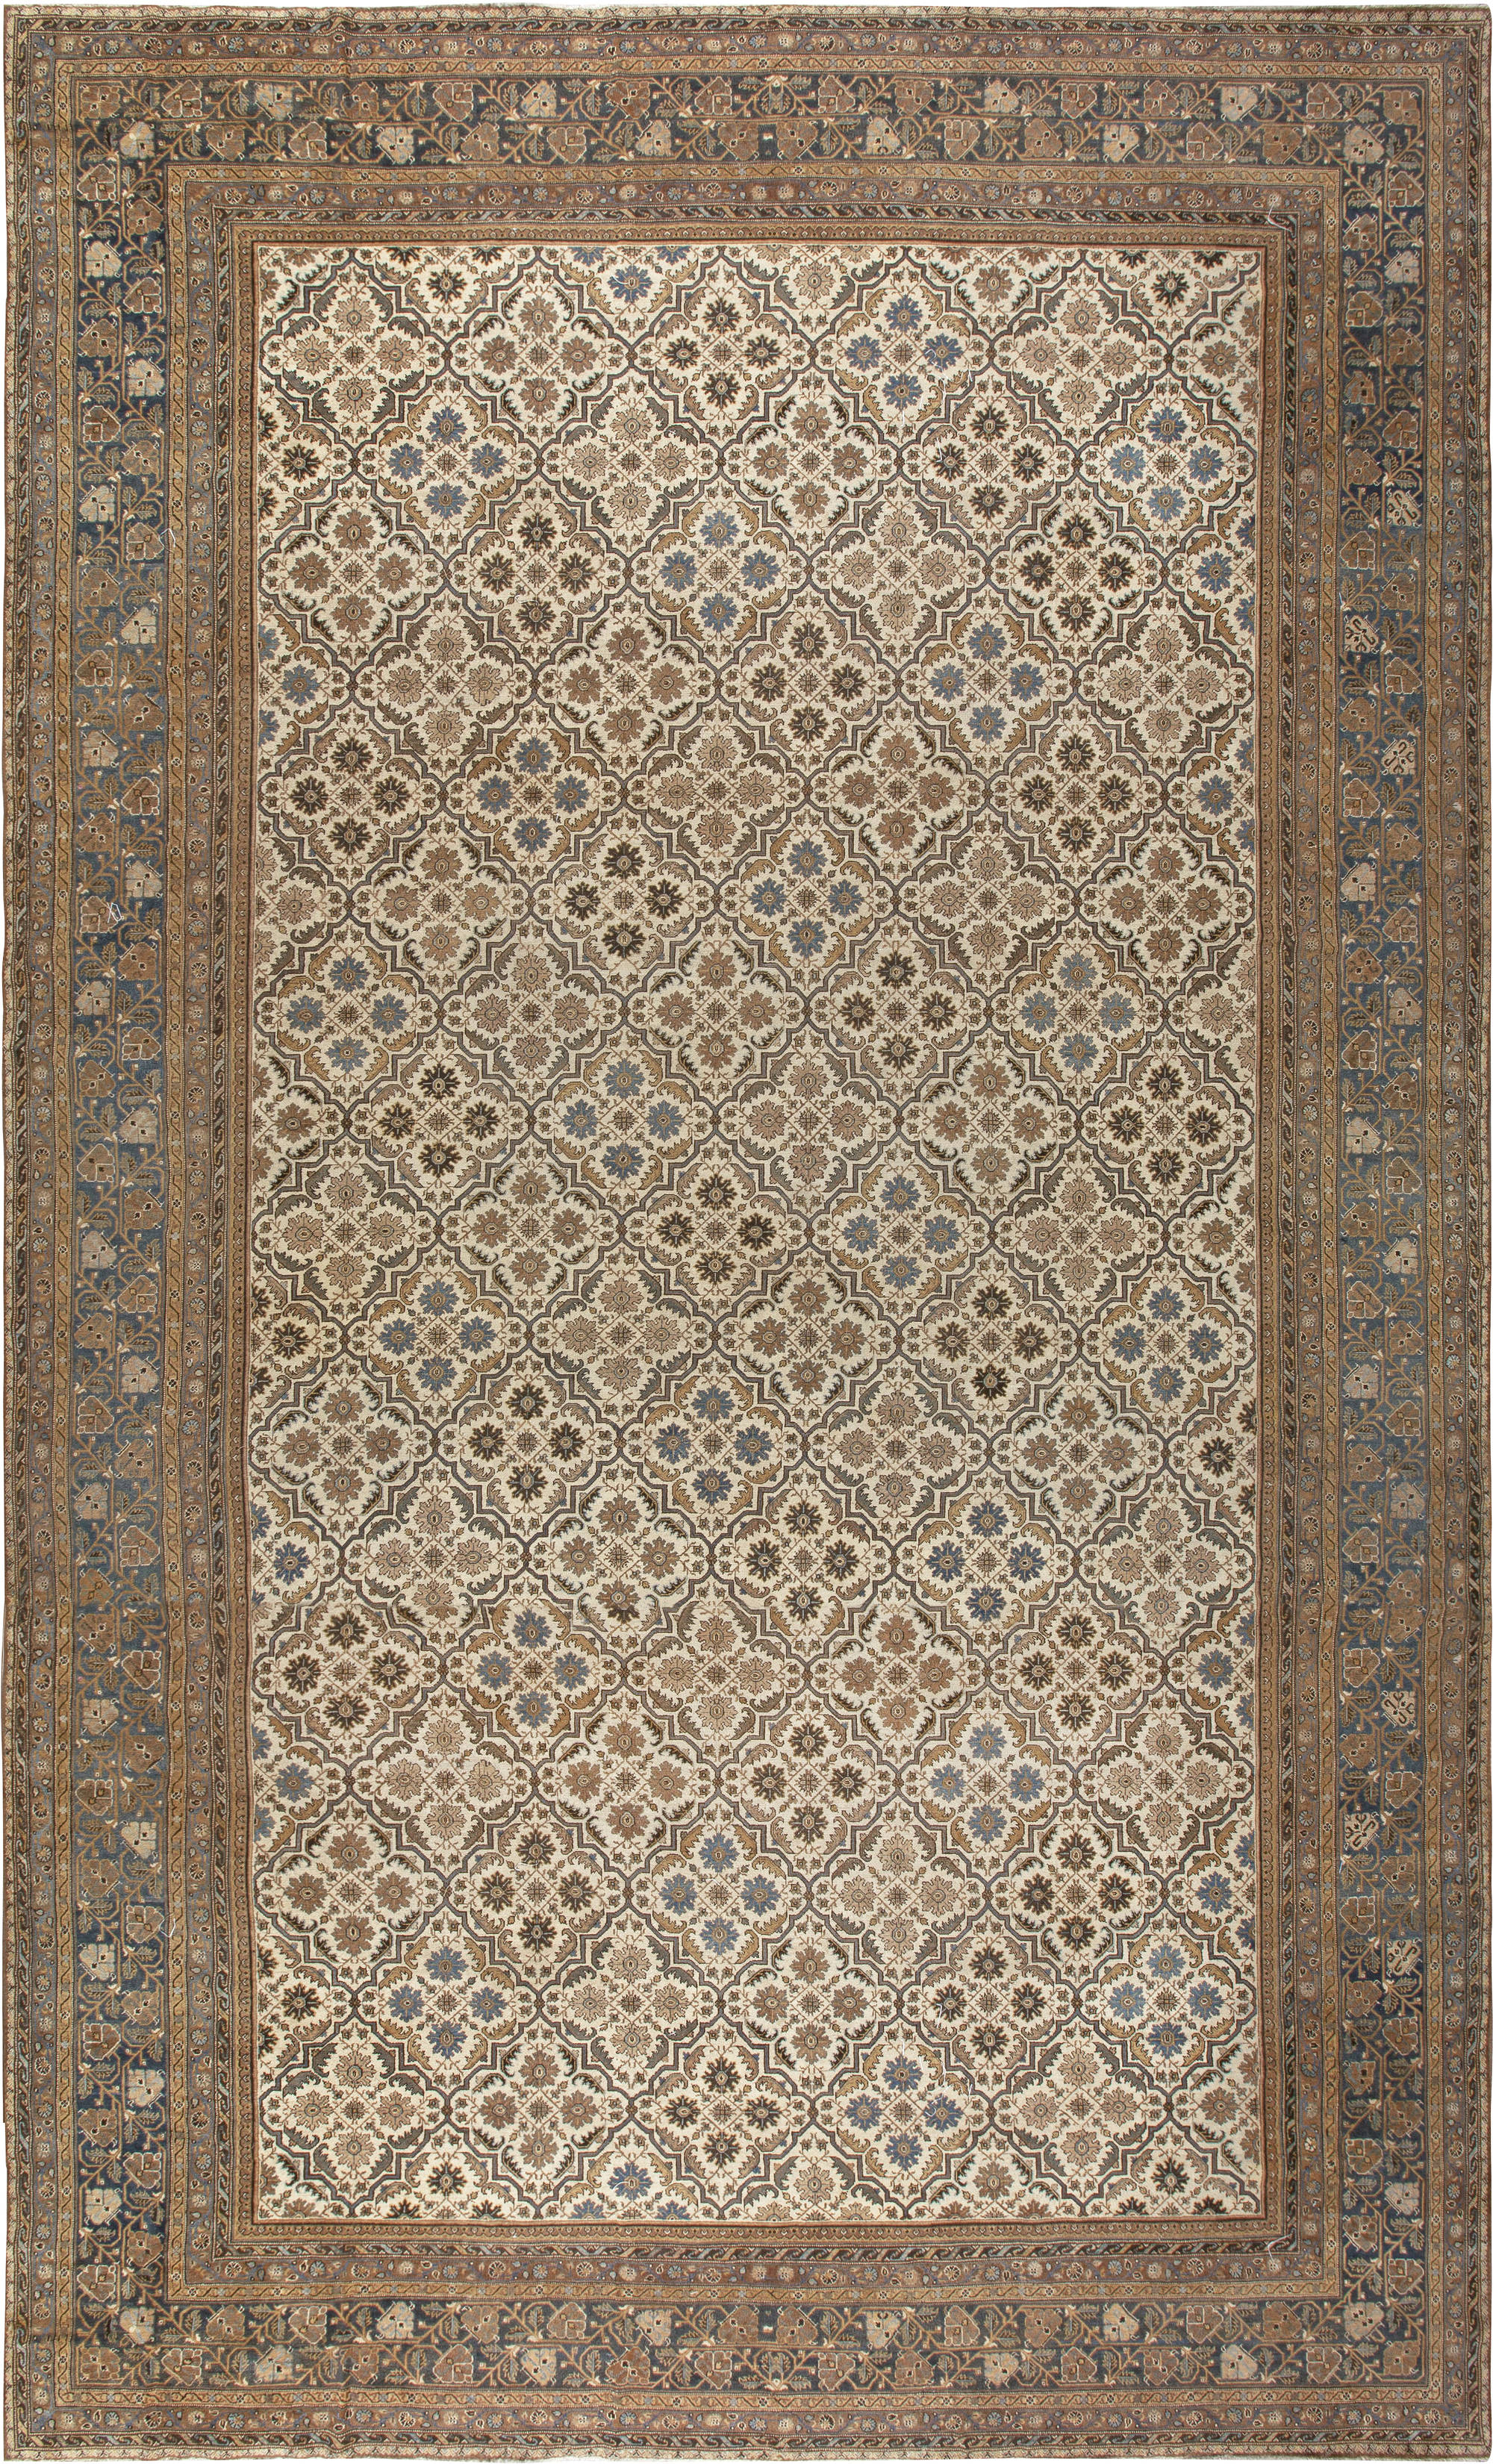 Oversized Vintage Indian Amristar Rug ( size adjusted) BB6795